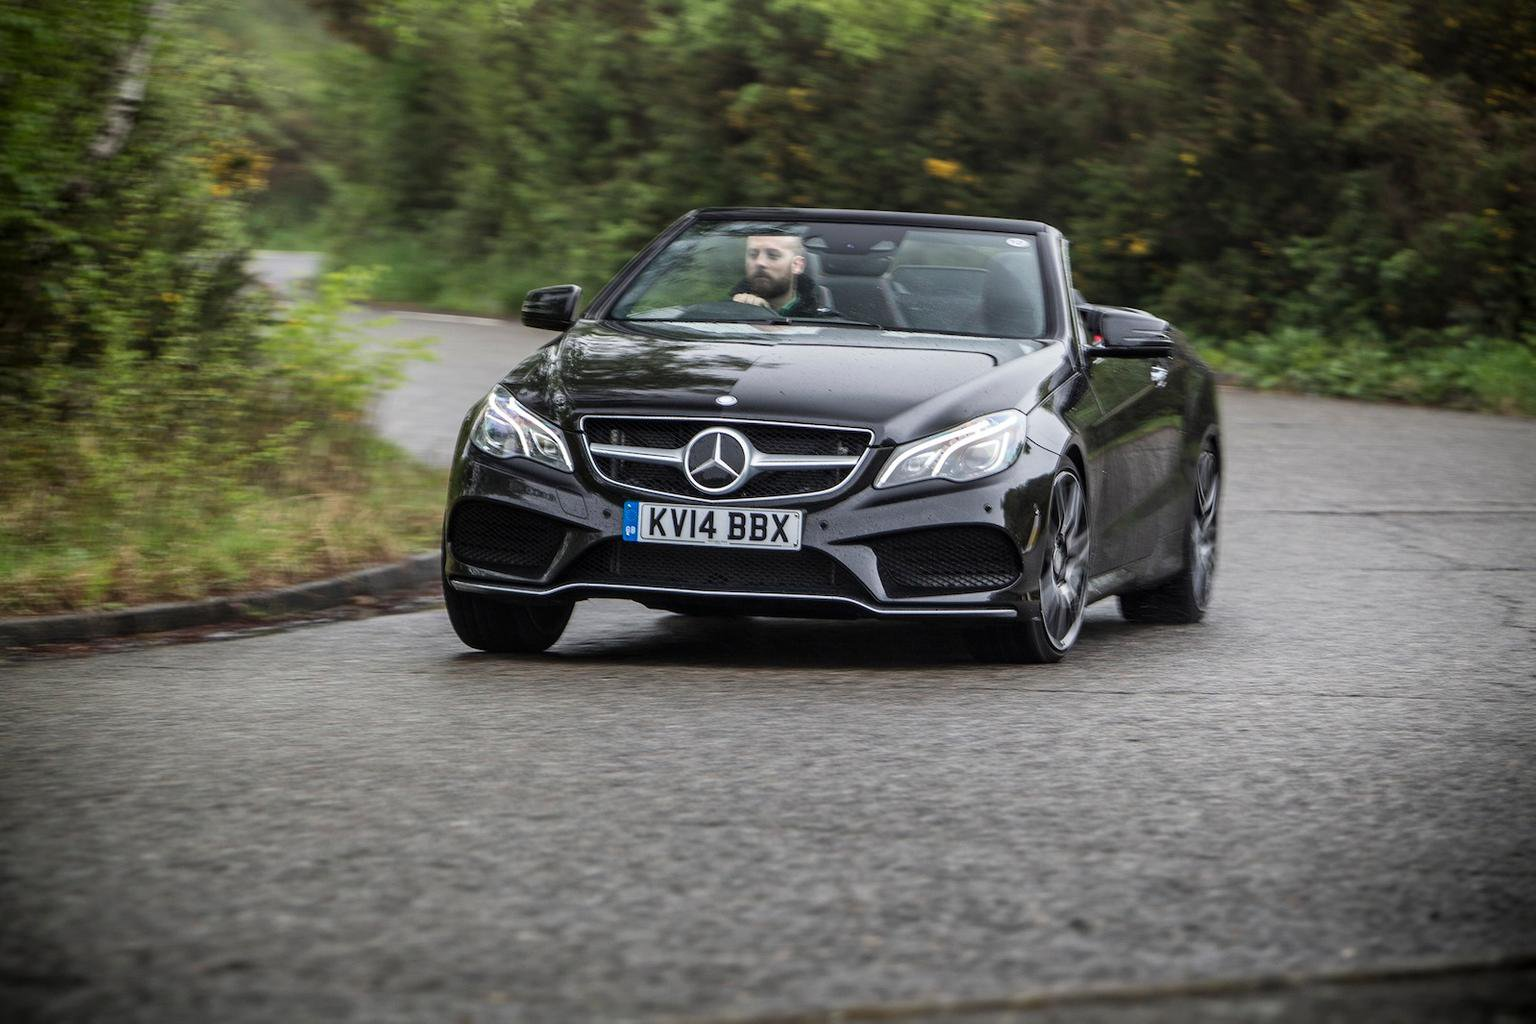 2014 Mercedes E400 Cabriolet review